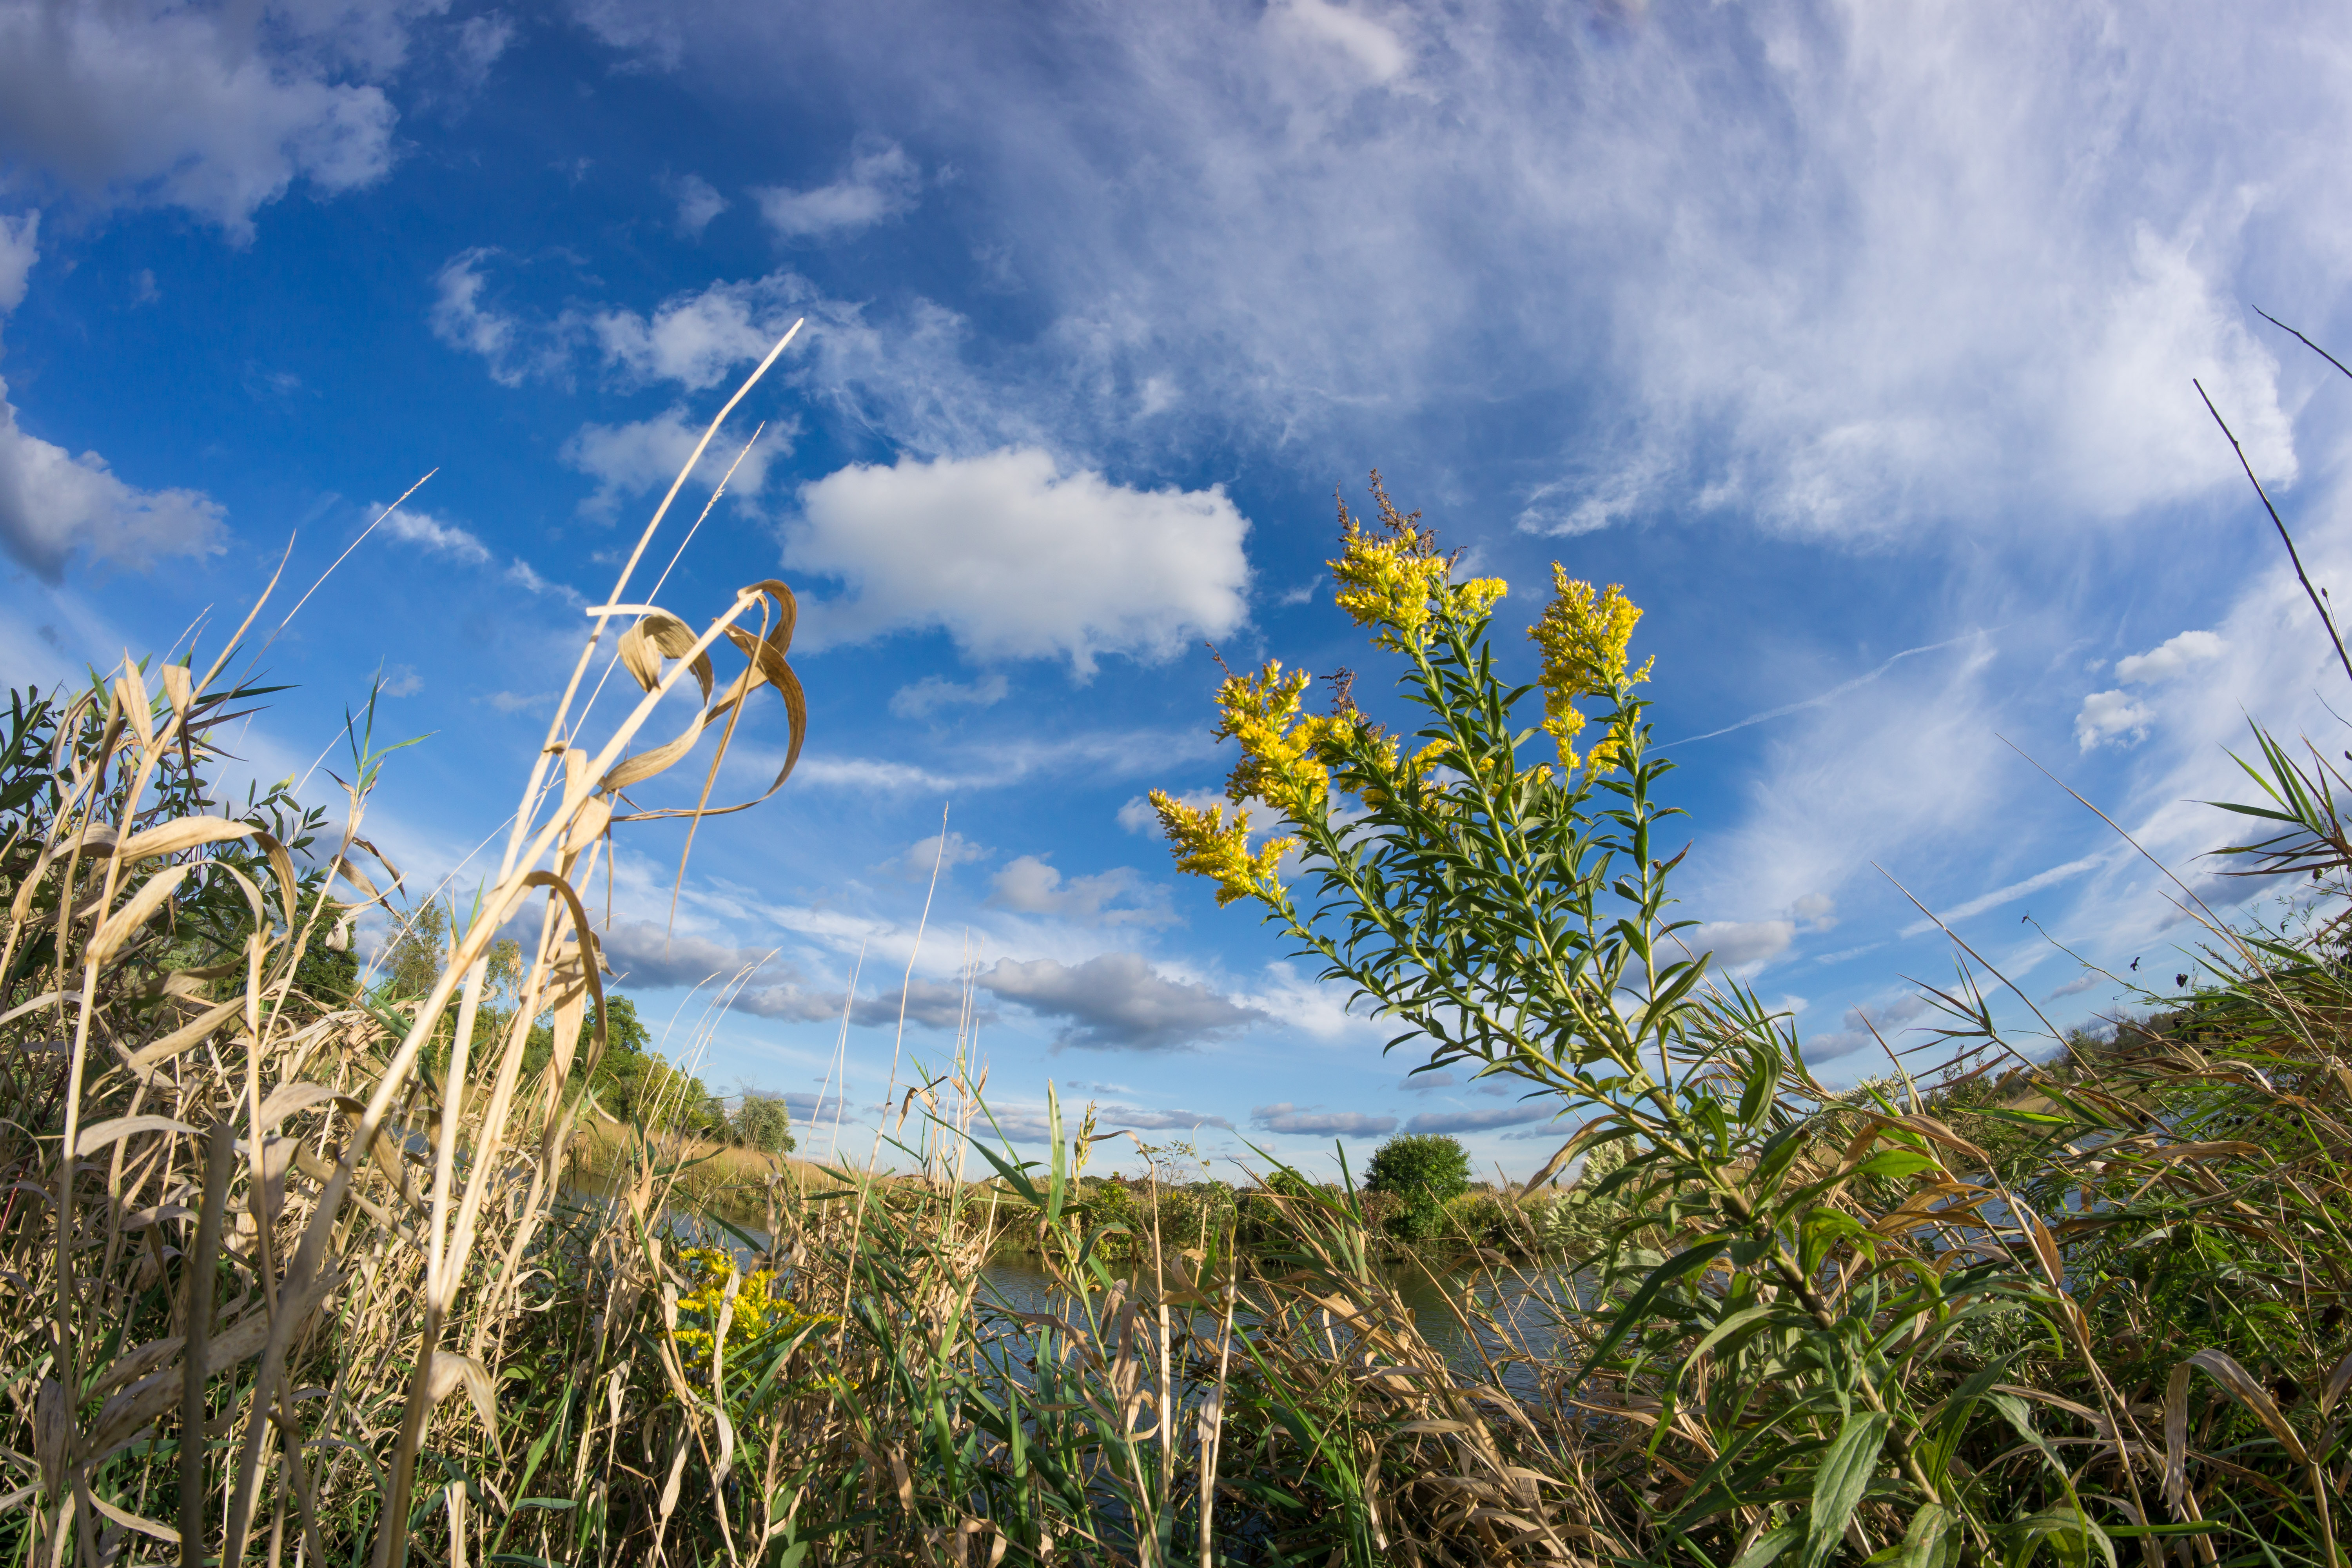 Goldenrod grows against a sharp blue sky at AZero, along the Main Ring Road. nature, prairie, autumn, plant, flower, goldenrod, sky, cloud Photo: Elliott McCrory